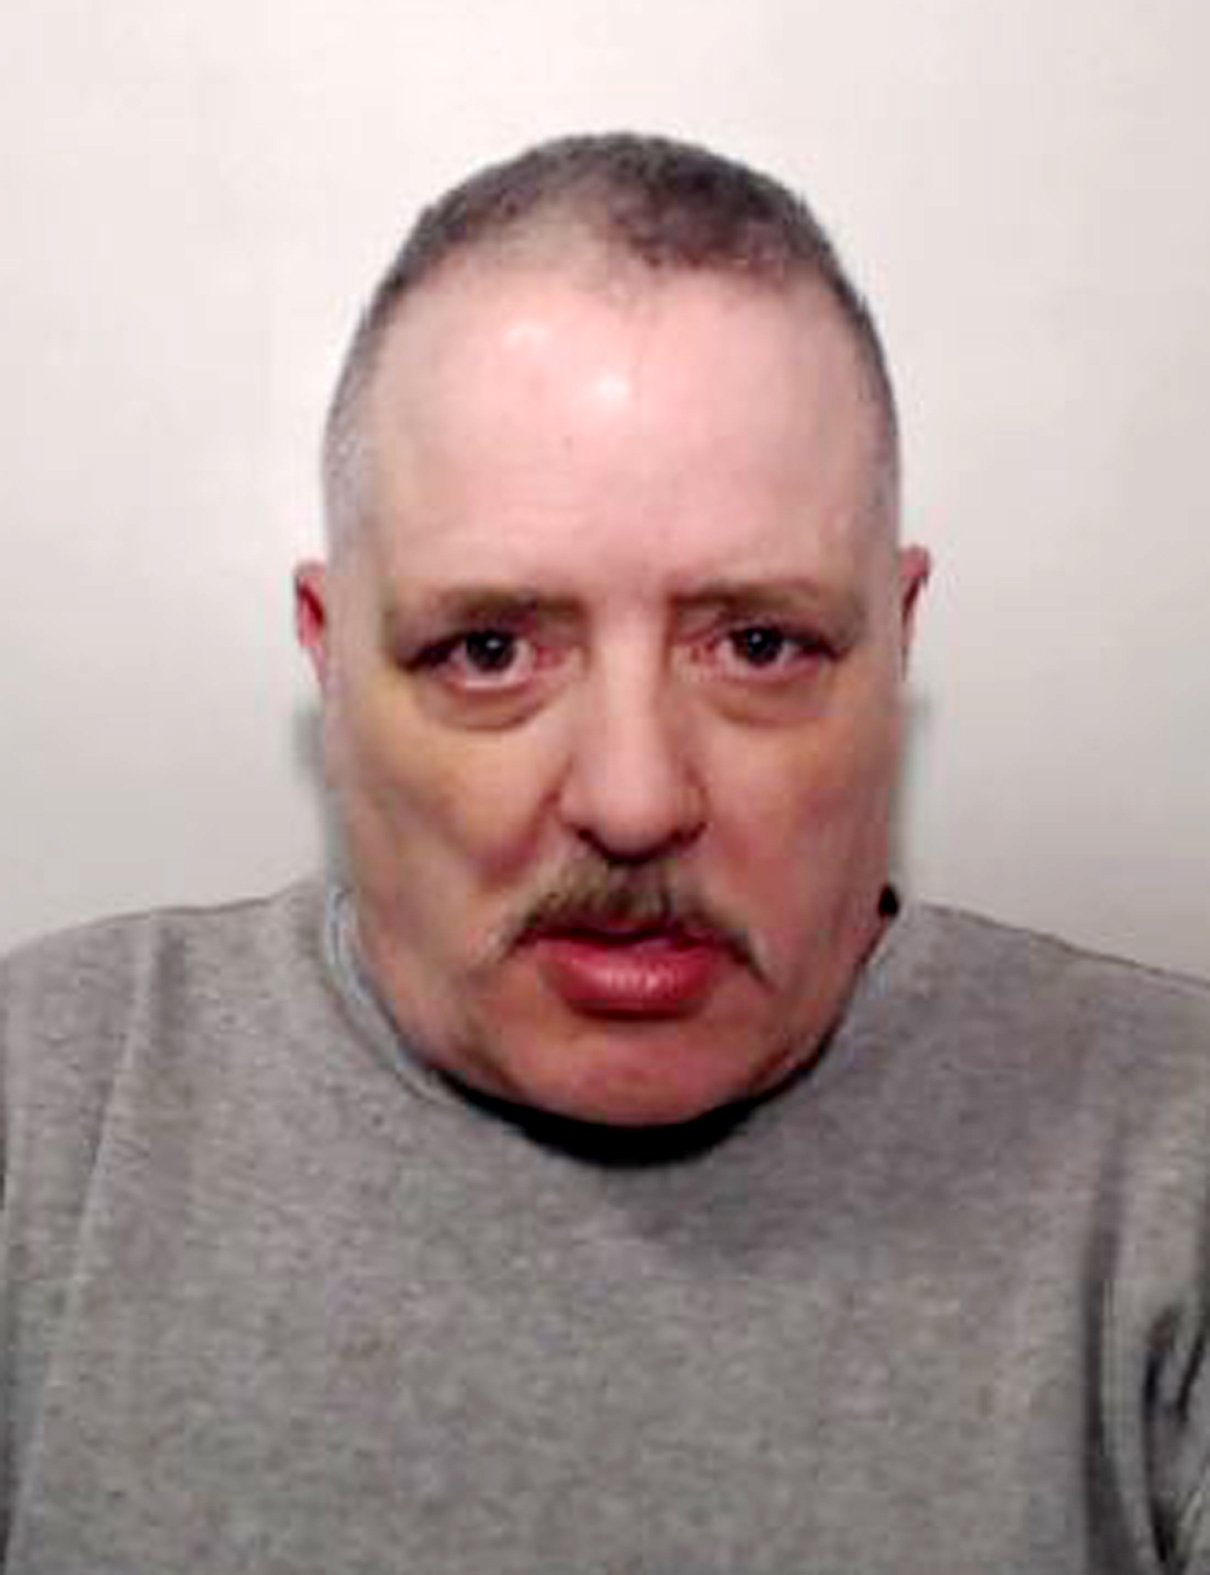 FROM JOHN JEFFAY AT CASCADE NEWS LTD 0161 660 8087 / 07771 957773 john@cascadenews.co.uk / www.cascadenews.co.uknnSyndicated for Bolton NewsnnEdward Pickles GUILTYnnANGRY Edward Pickles kicked down his neighbours door and stabbed him ¿ because he mistakenly thought he¿d made a noise moving his bin.nHe was jailed for three years and six months at Bolton Crown Court after he admitted intentionally causing grievous bodily harm.nPickles, 55, flew into a rage when he wrongly believed Robin Spence, 53, had moved bins in the communal area of the block of flats where they both lived at 4am, the court heard.nHe kicked in his front door with such force that the lock flew off. He then threw pepper at Mr Spence and punched him three times in the face. nn